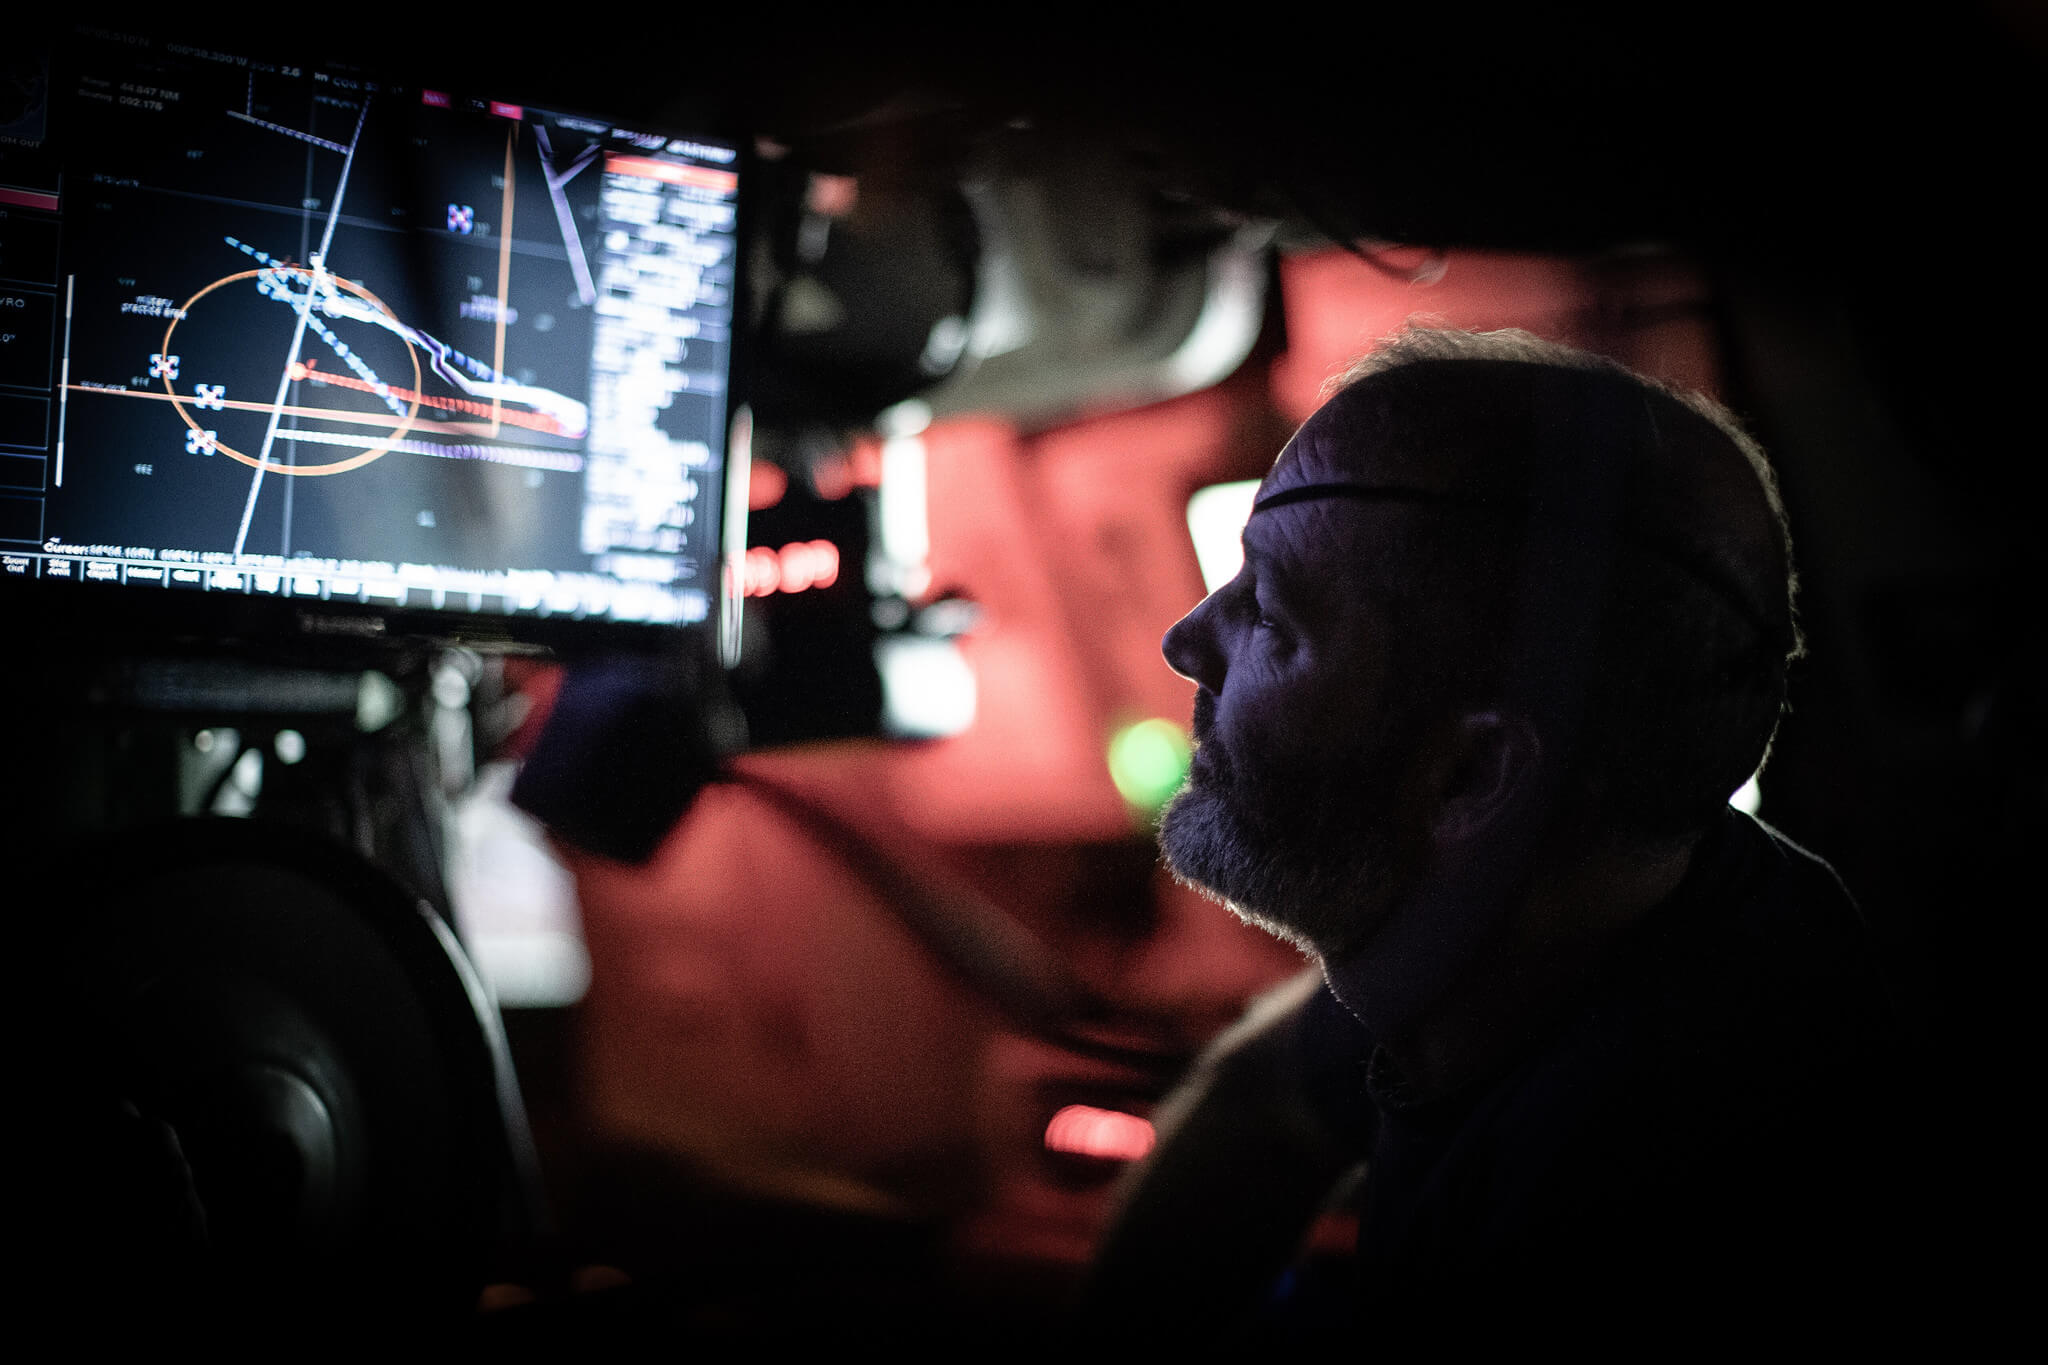 A Lieutenant Commander monitors a Spanish submarine during NATO exercise Dynamic Mariner. © NATO / Flickr